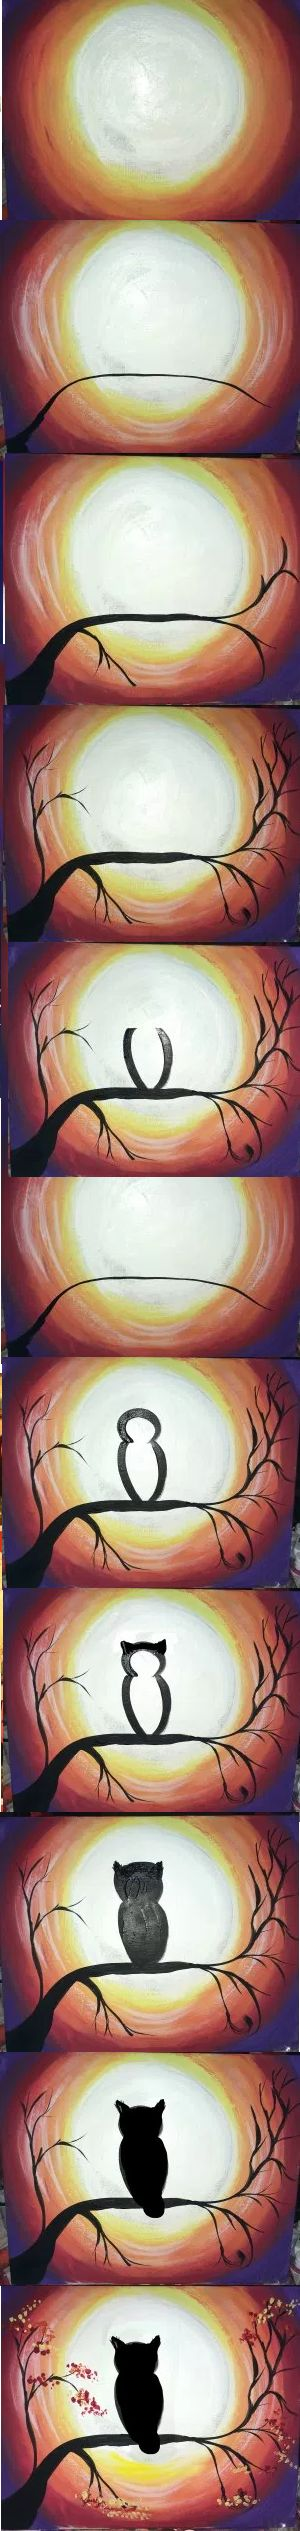 Step by step painting. How to paint a tree owl silhouette with full moon.